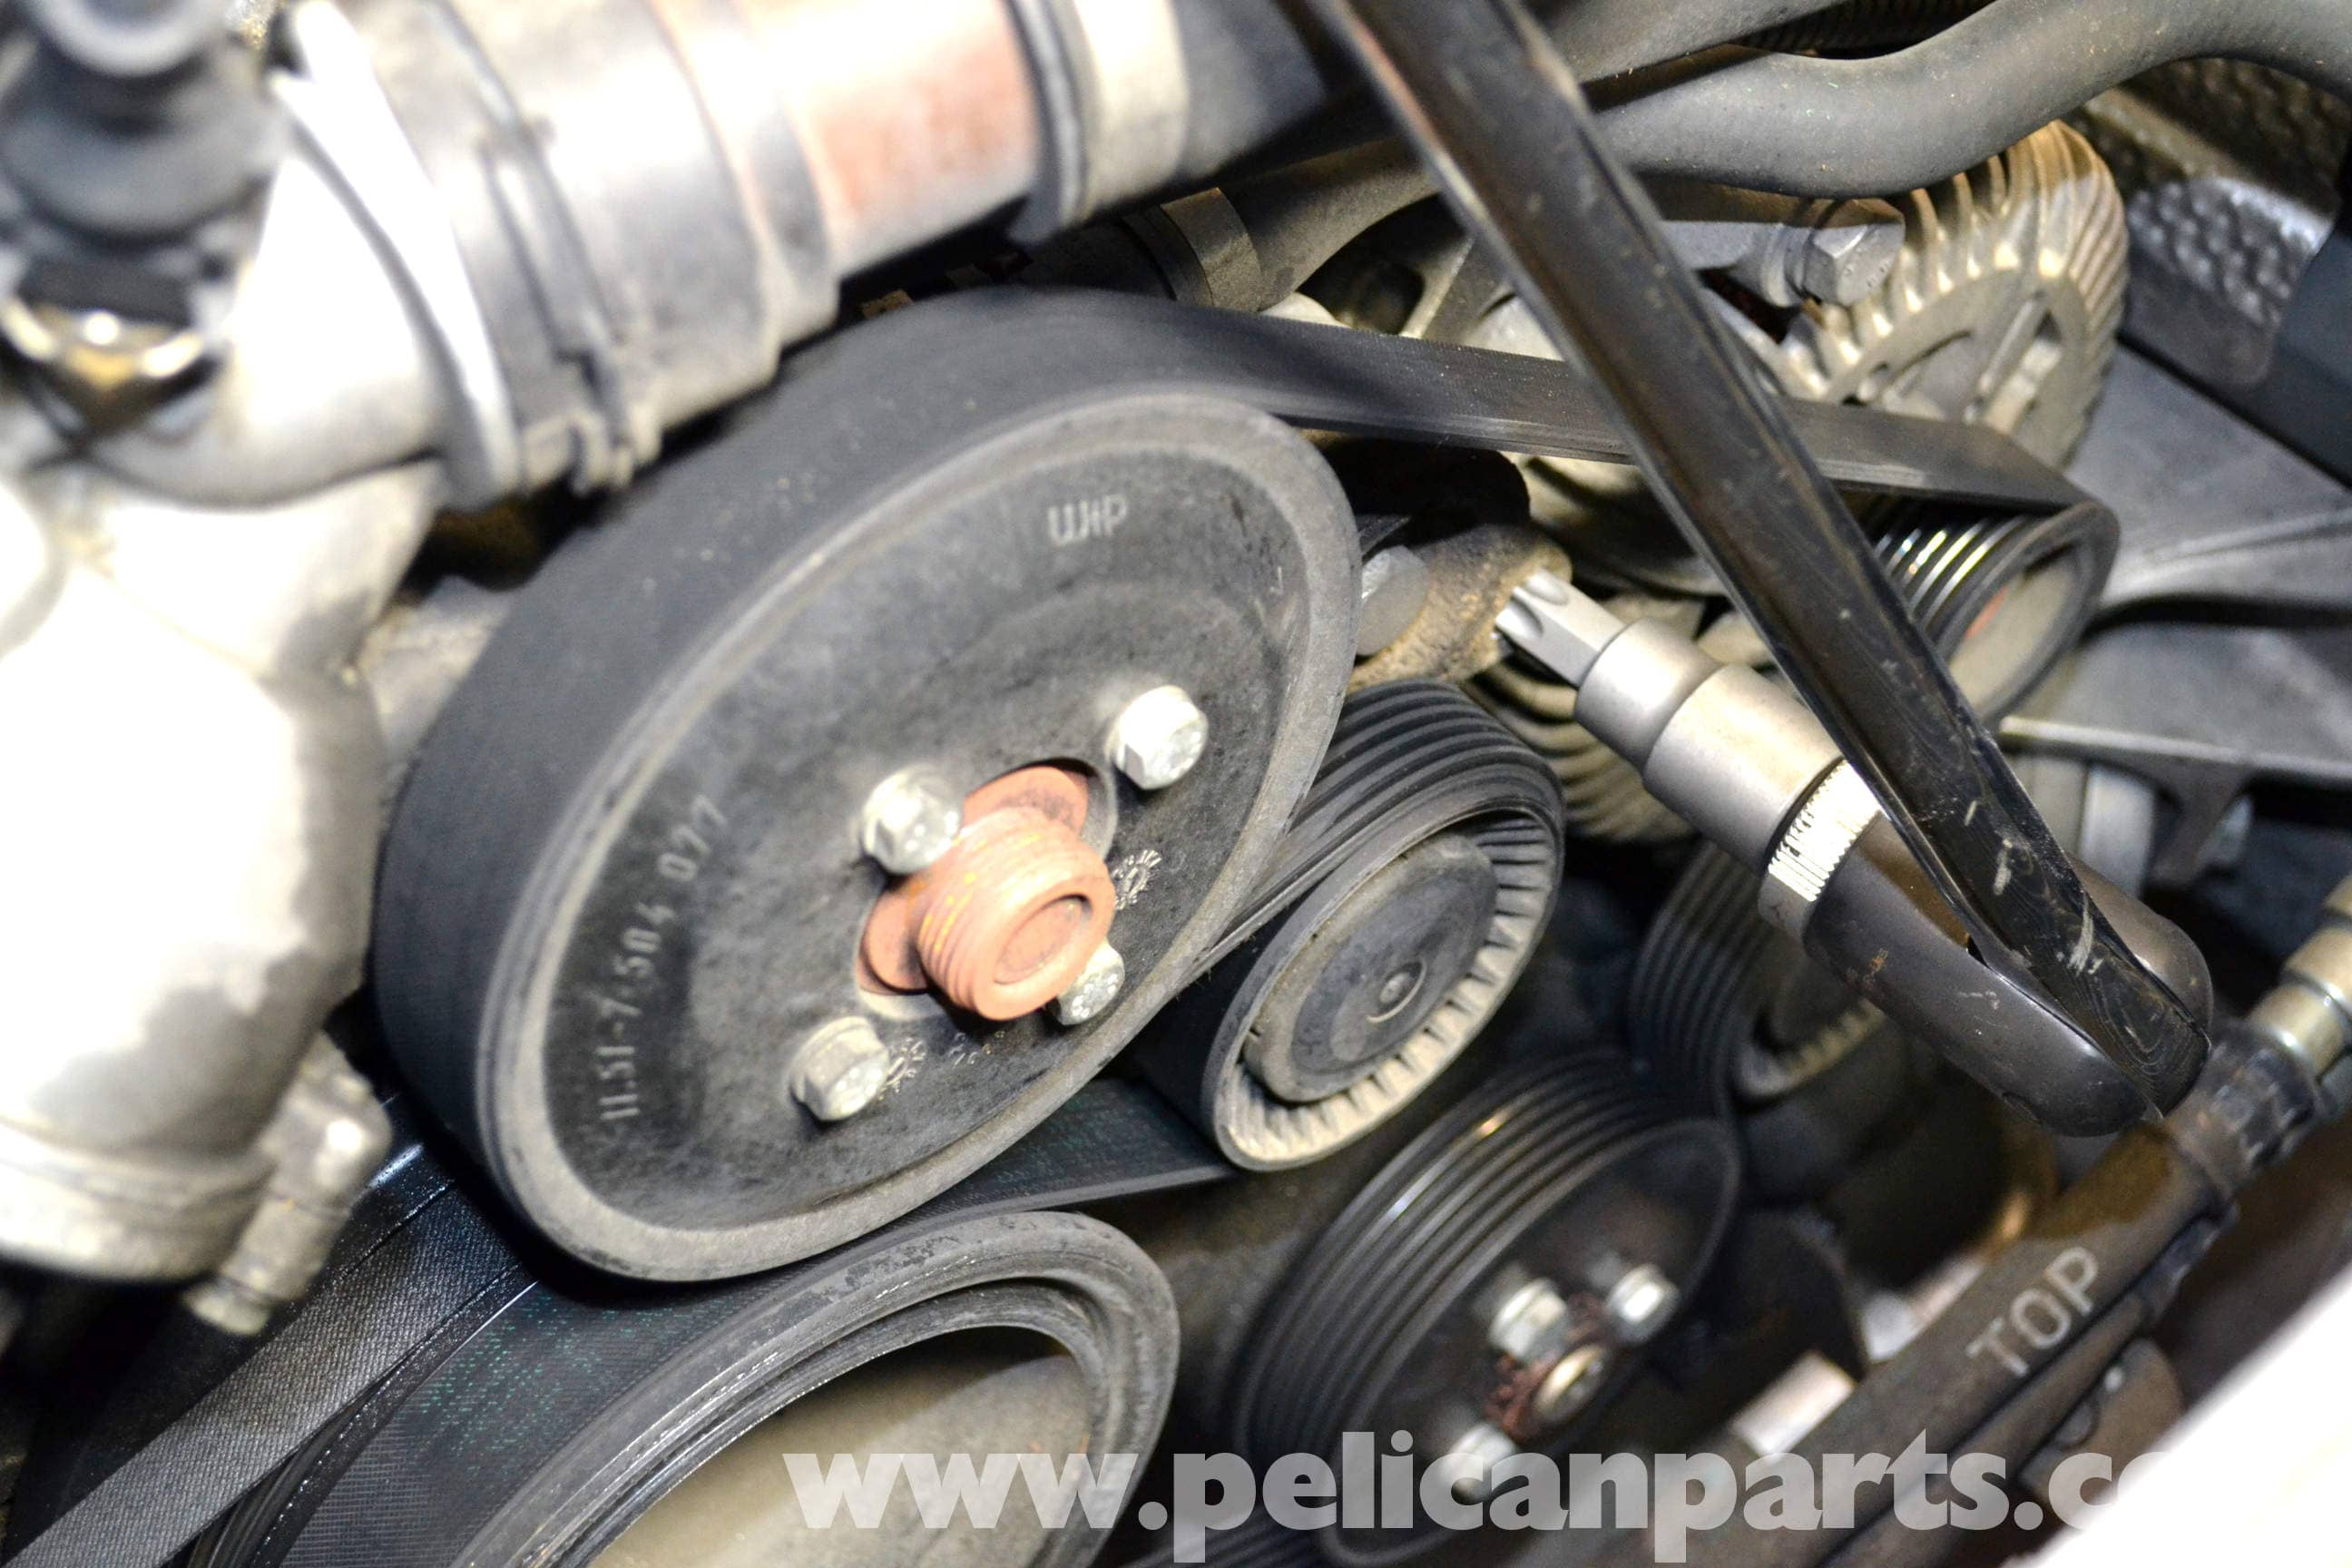 BMW - The Infamous Alternator cket Oil Leak on the E65 BMW 7 ...